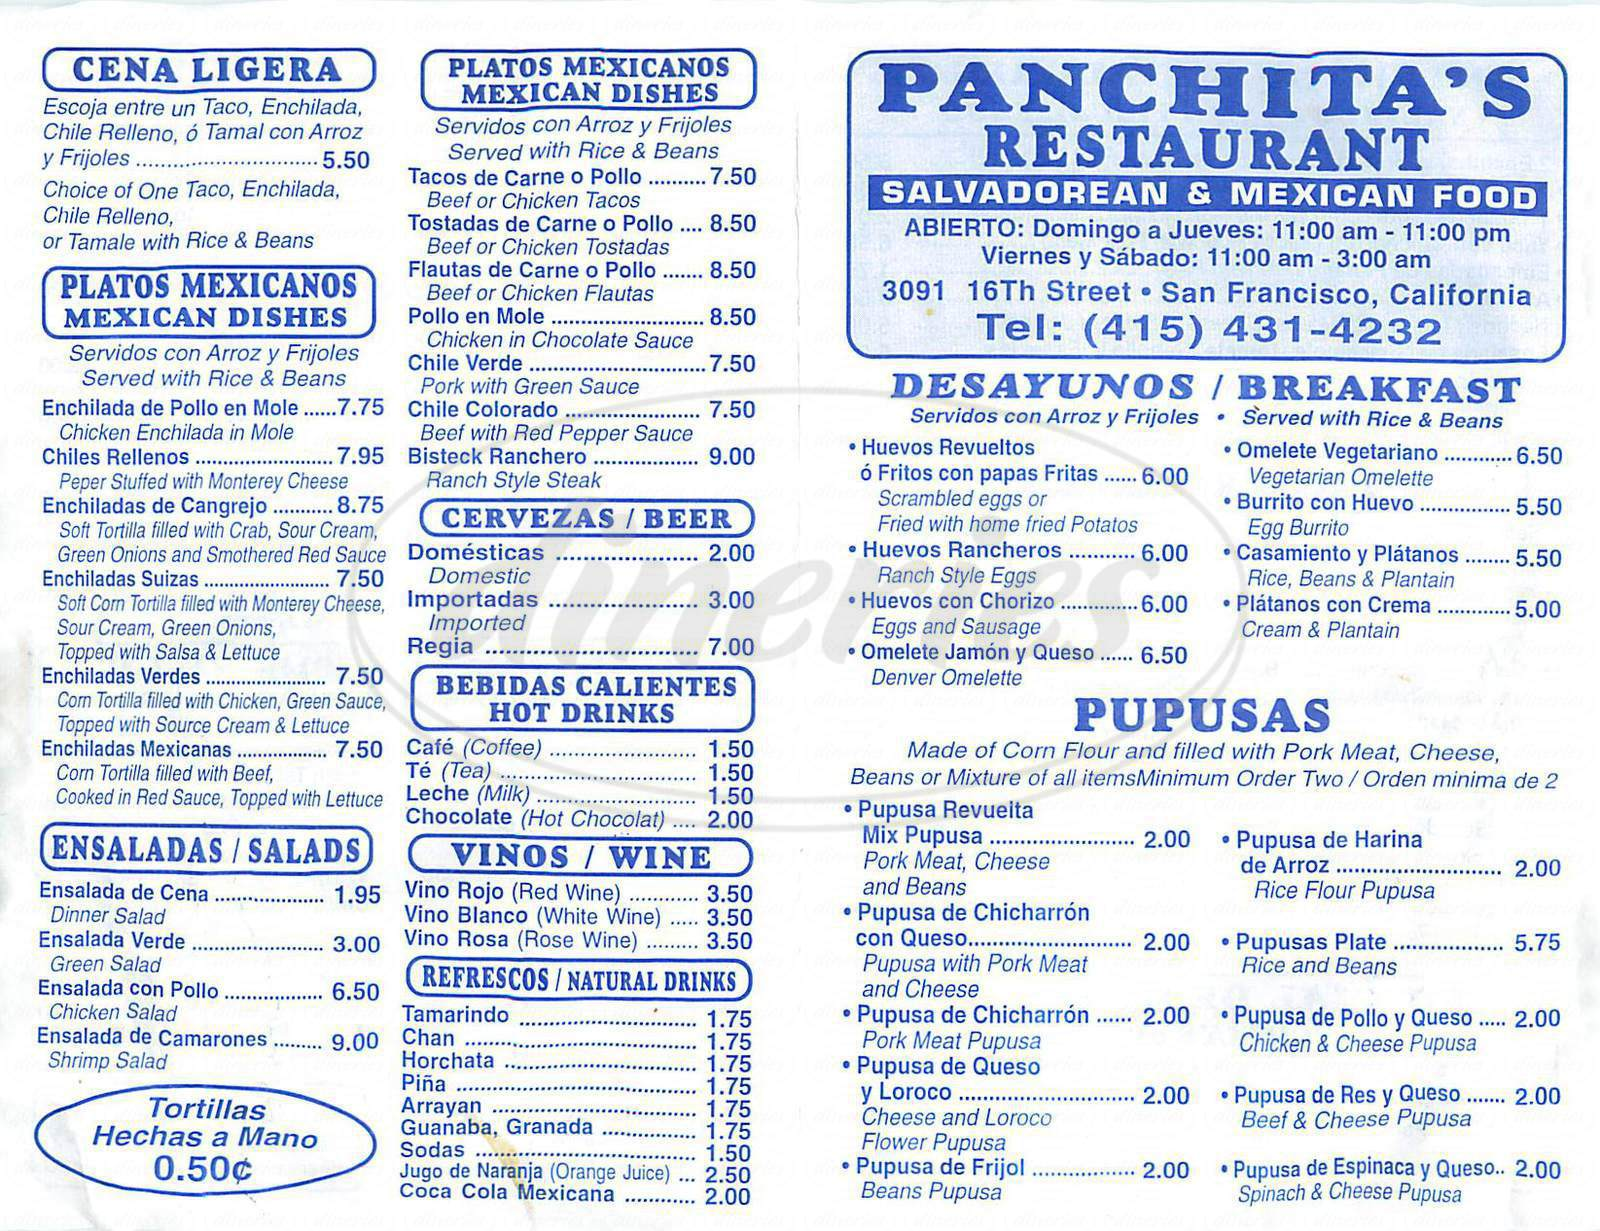 menu for Panchita's